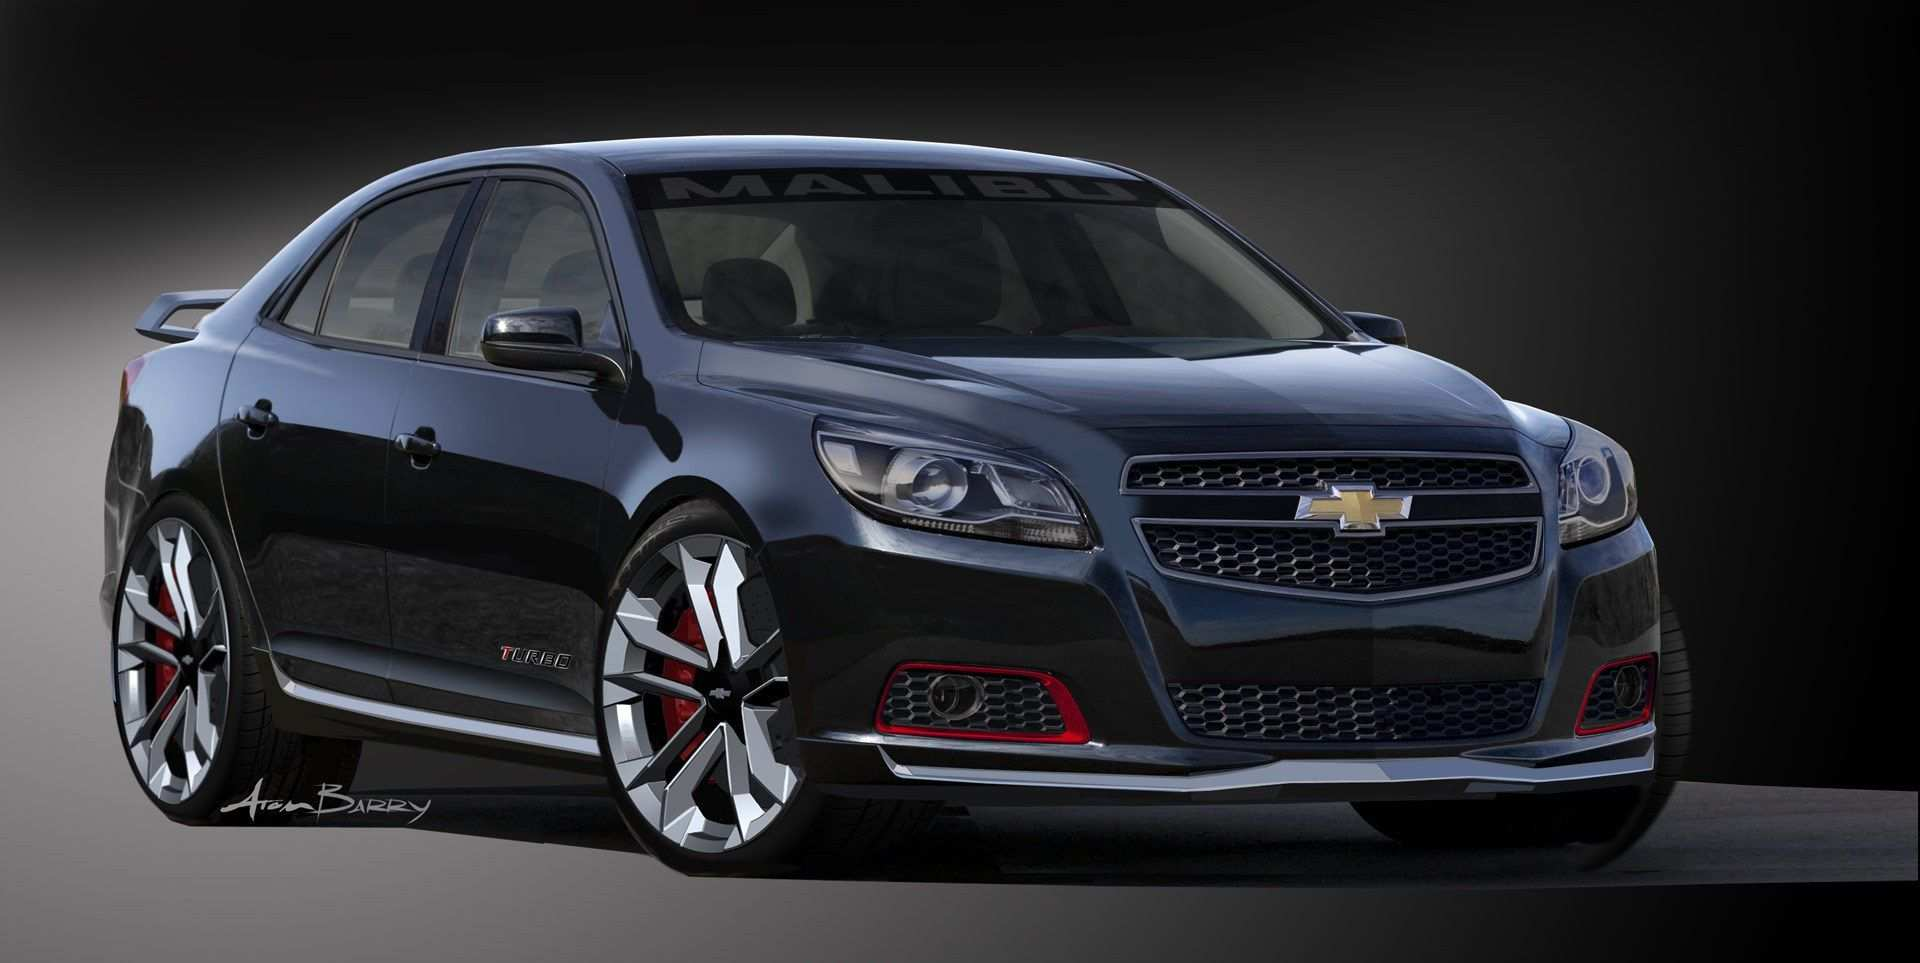 75 The 2020 Chevrolet Malibu Style